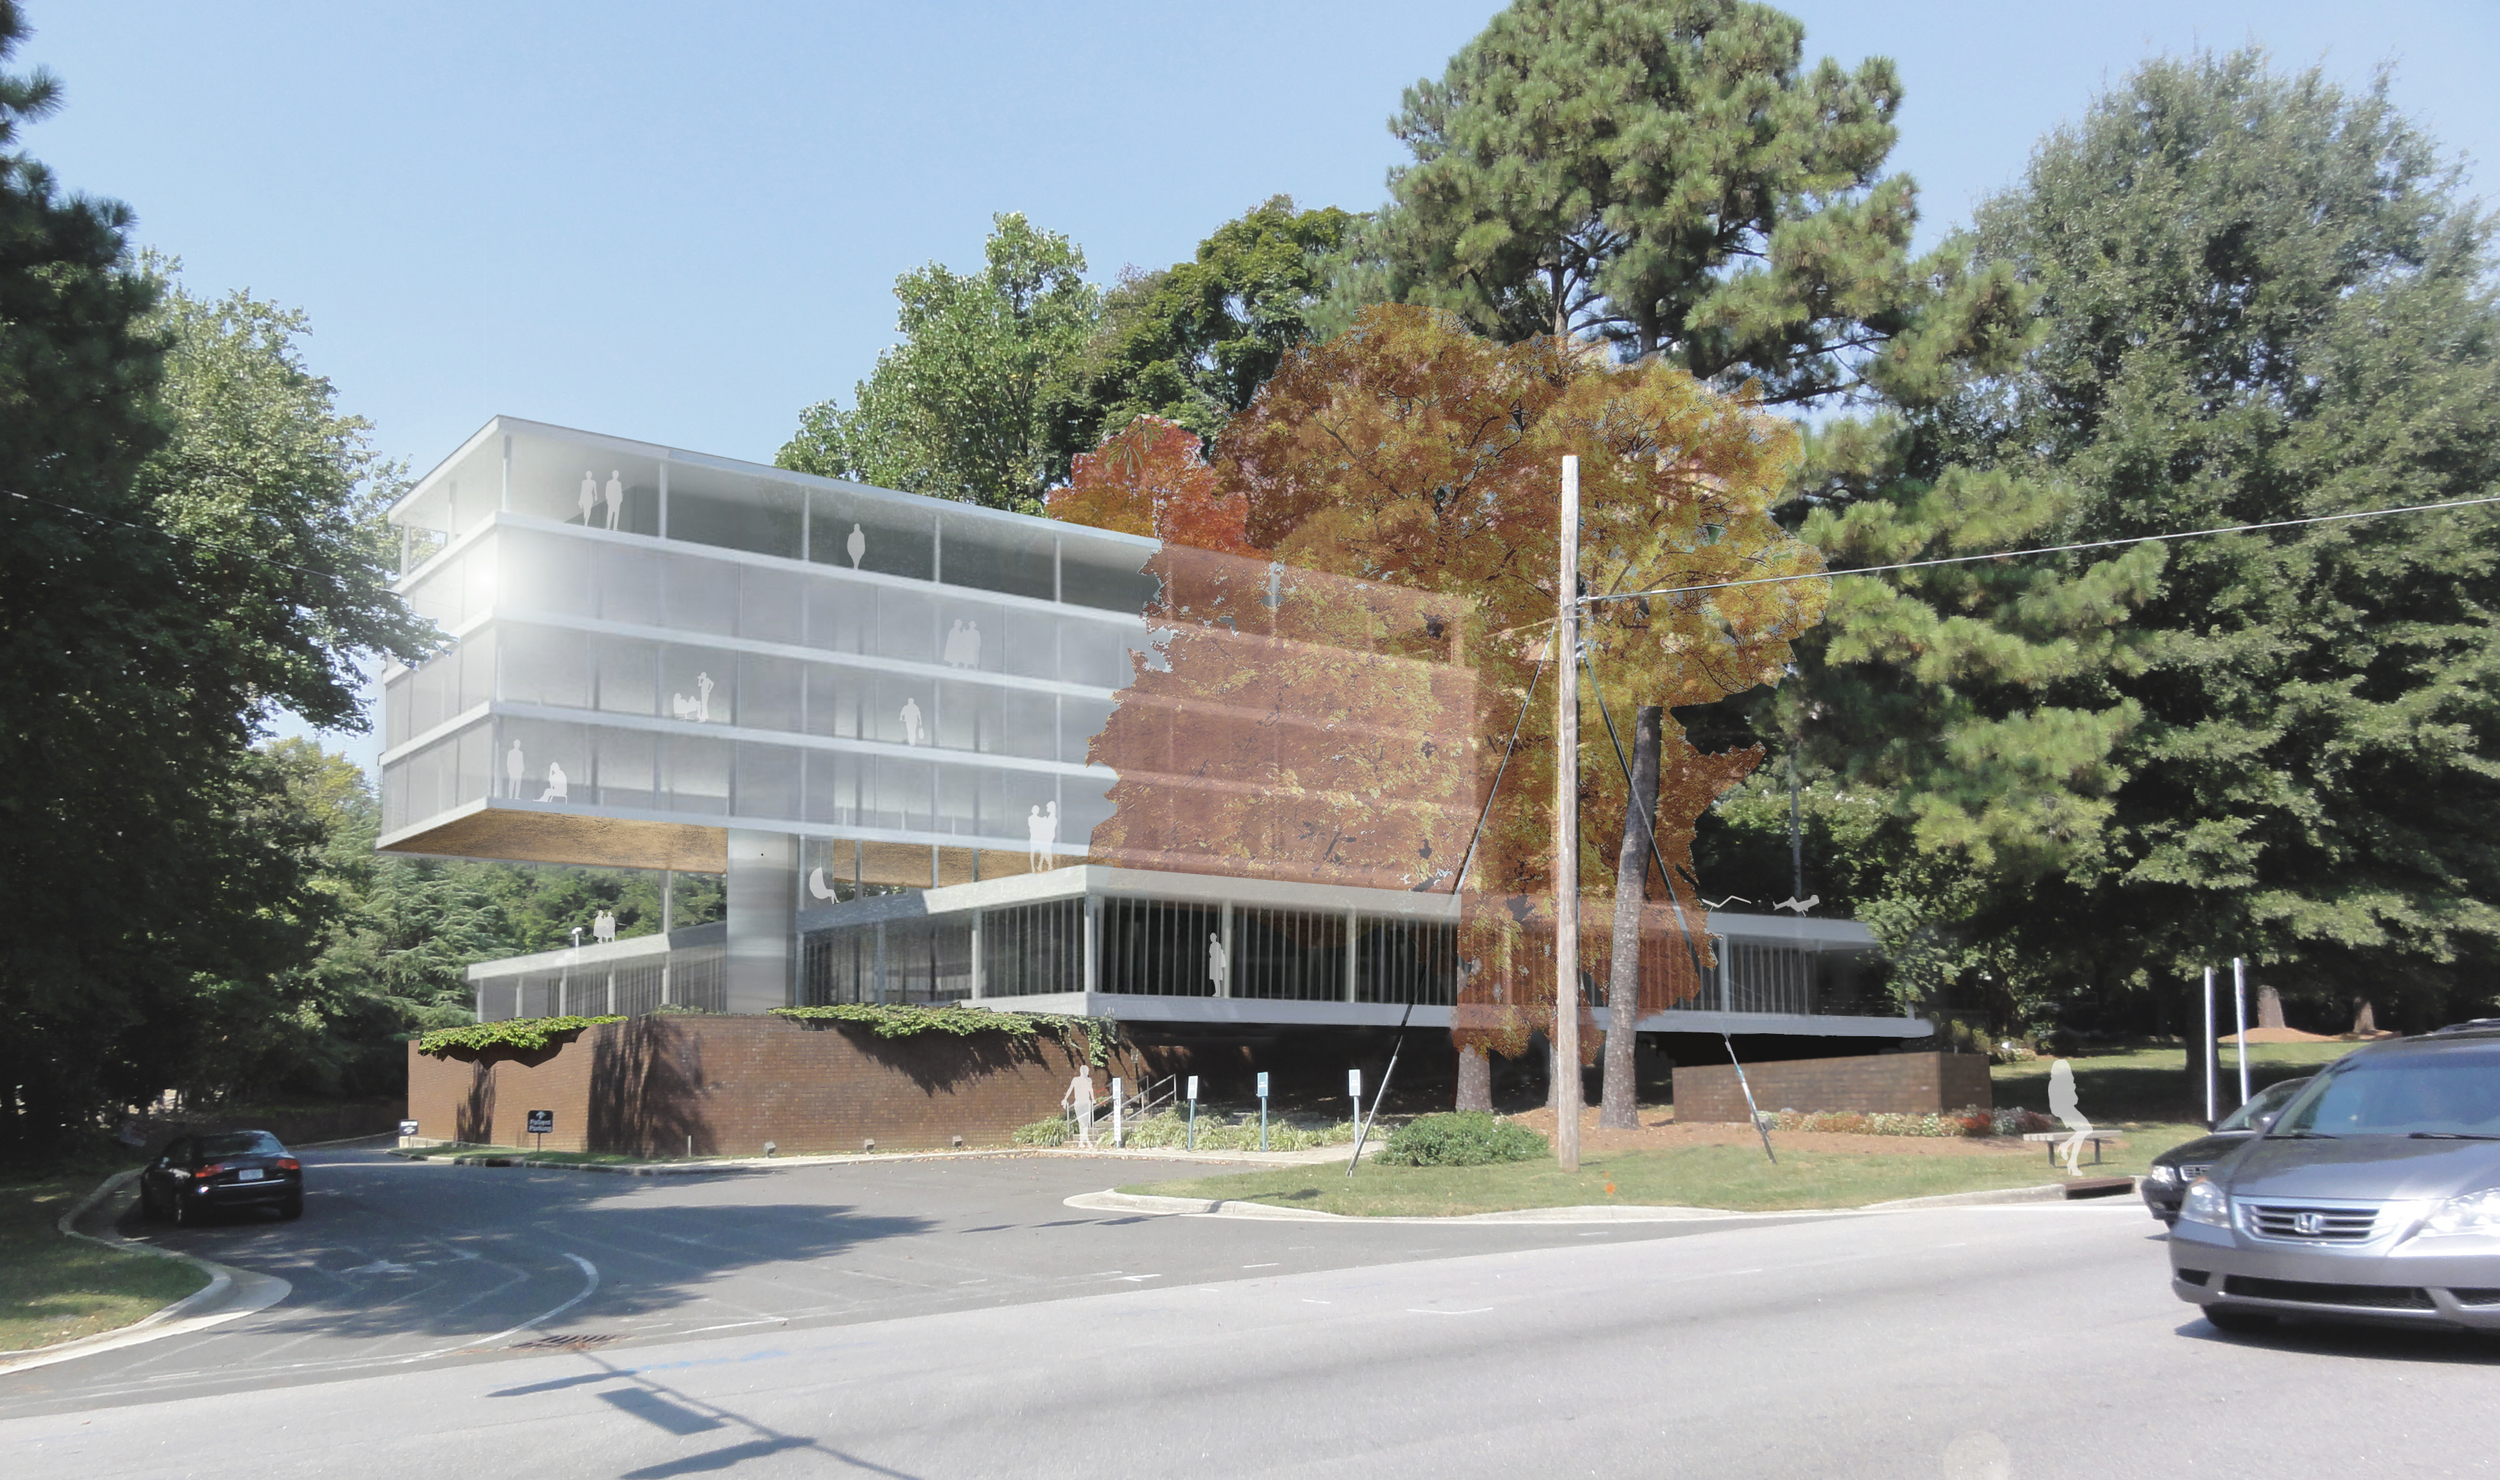 3515 Glenwood   Raleigh, North Carolina   Architect: HA    Program:  Refurbishment of an existing 35,000sf (3,500m2) office building, with an additional35,000sf (3,500m2) new construction of office space on top of the existing building. The plan sought to create an interior courtyard in the existing building with a new roof garden, also on the existing structure.   Client:  Withheld